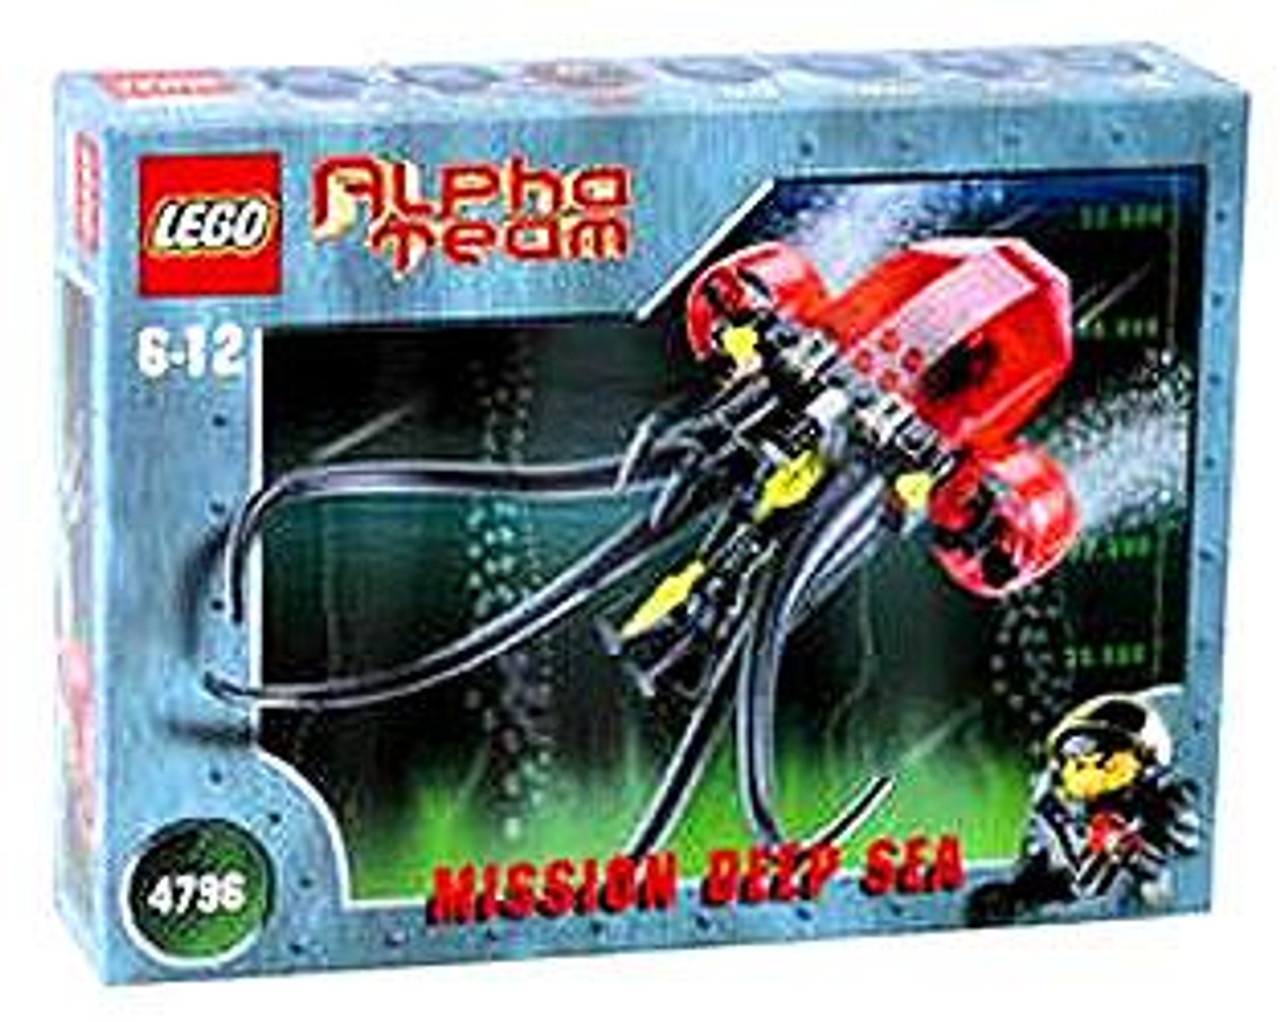 LEGO Alpha Team Mission Deep Sea Ogel Mutant Squid Deep Sea Set #4796